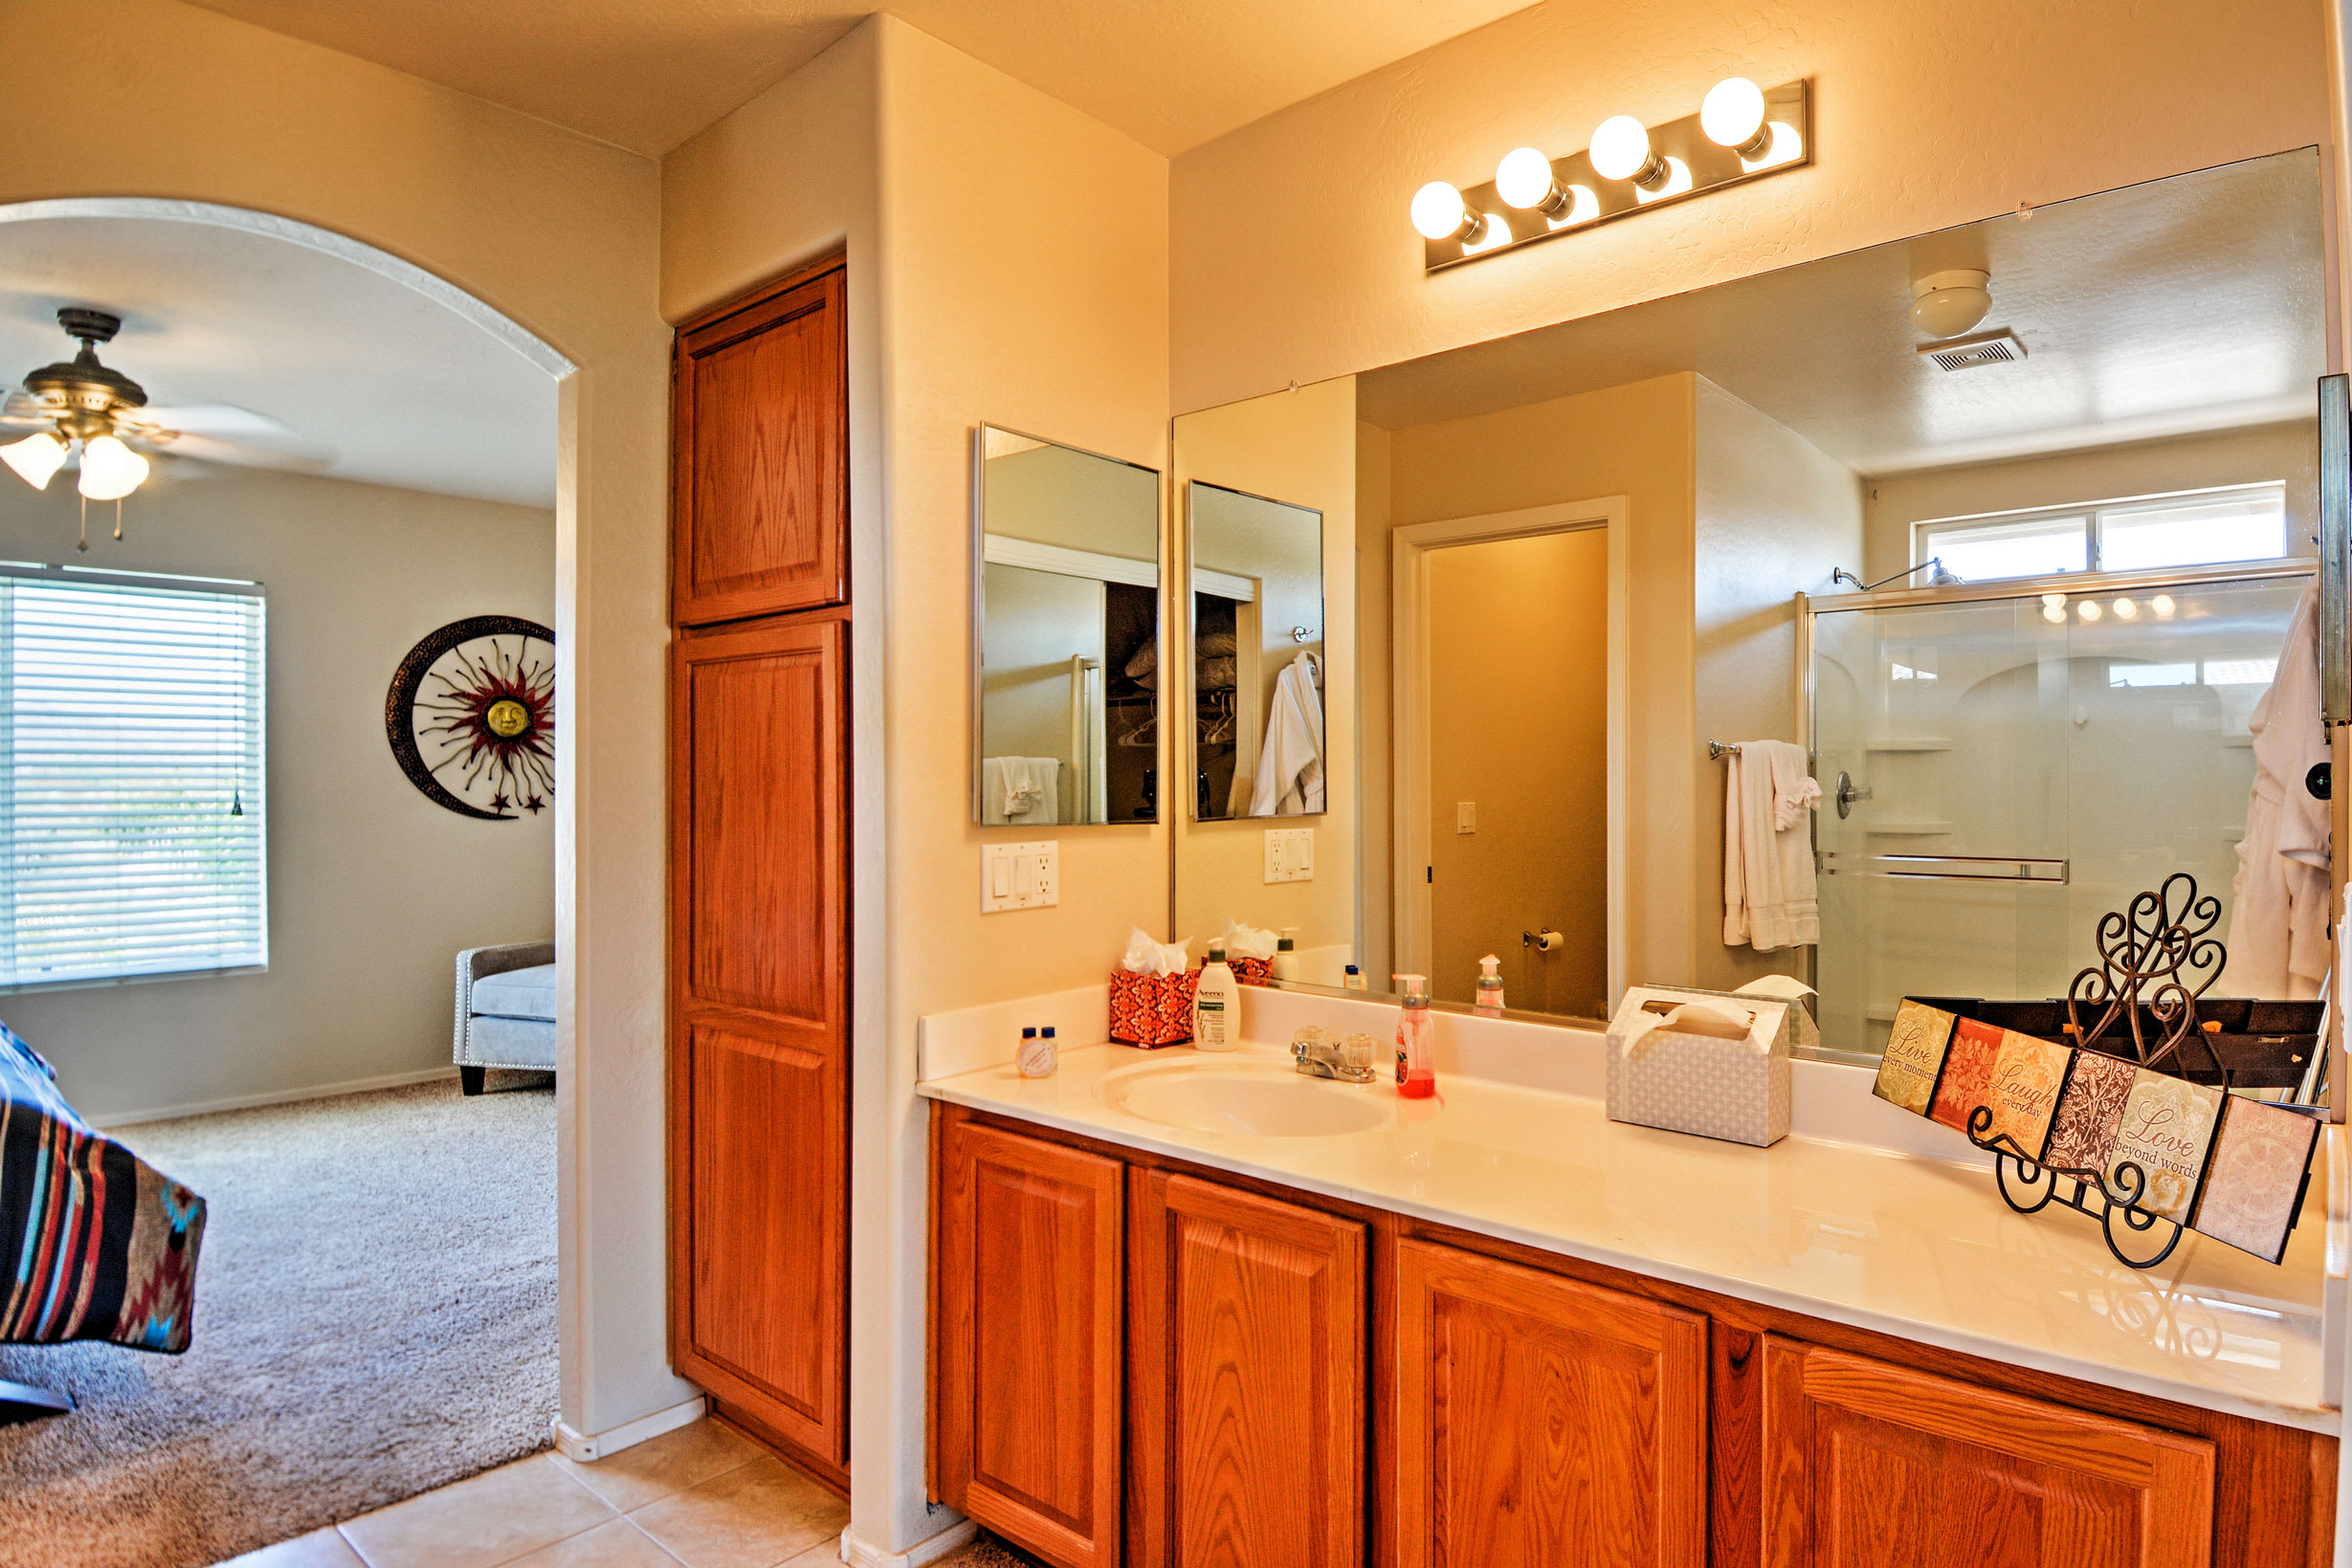 Freshen up in this lovely en-suite bathroom before hitting the town!